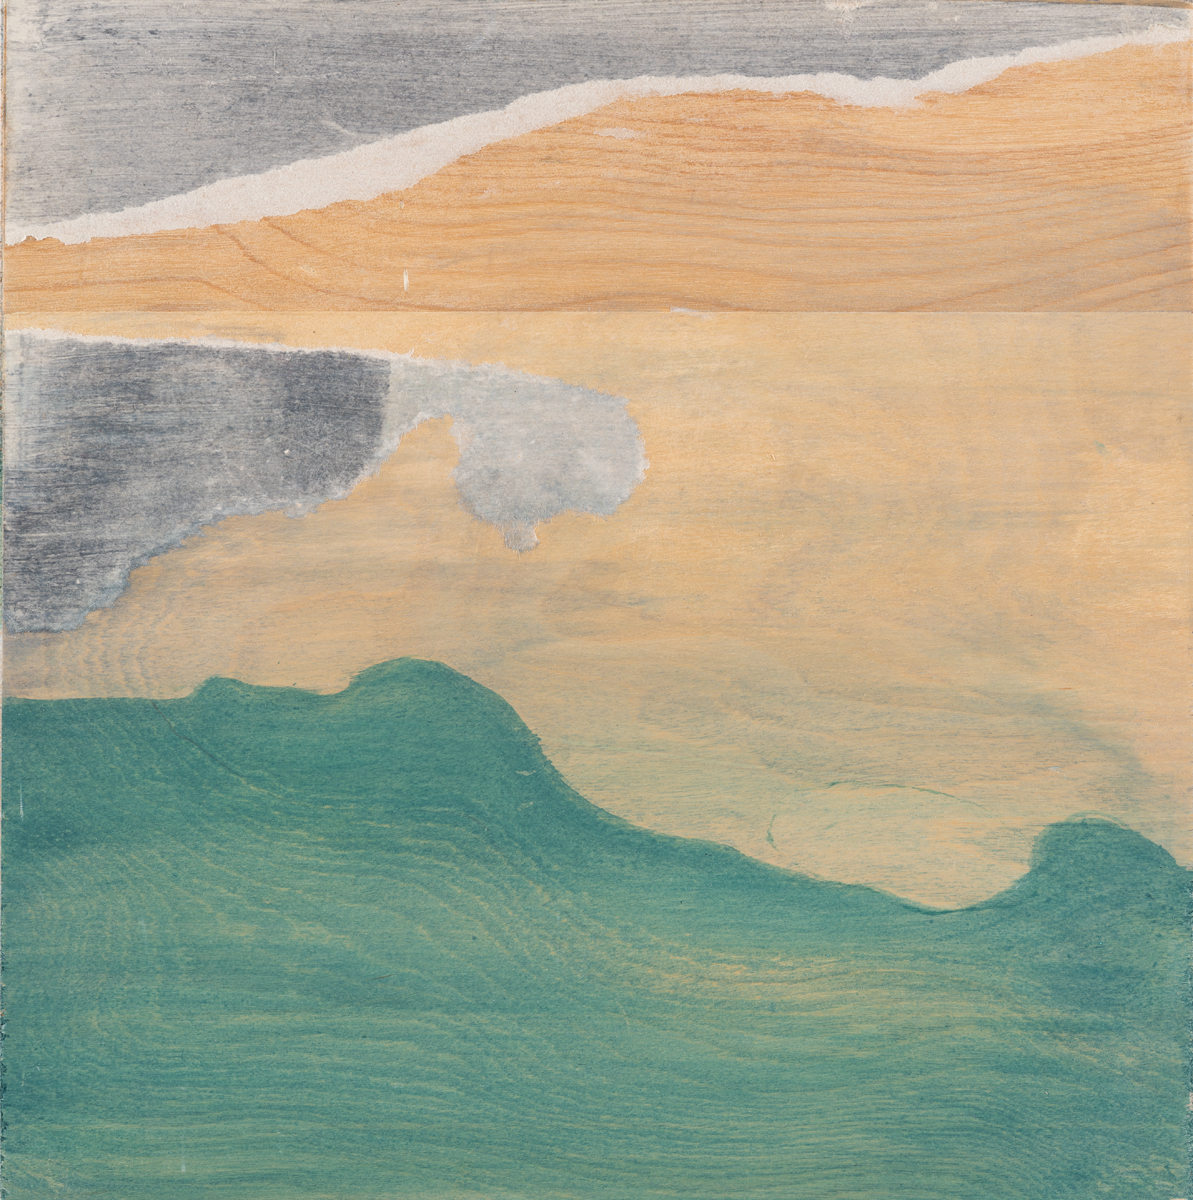 """Landscape with the sea , 2016. Acrylic on wood panel. 9-3/4""""x9-1/2"""""""